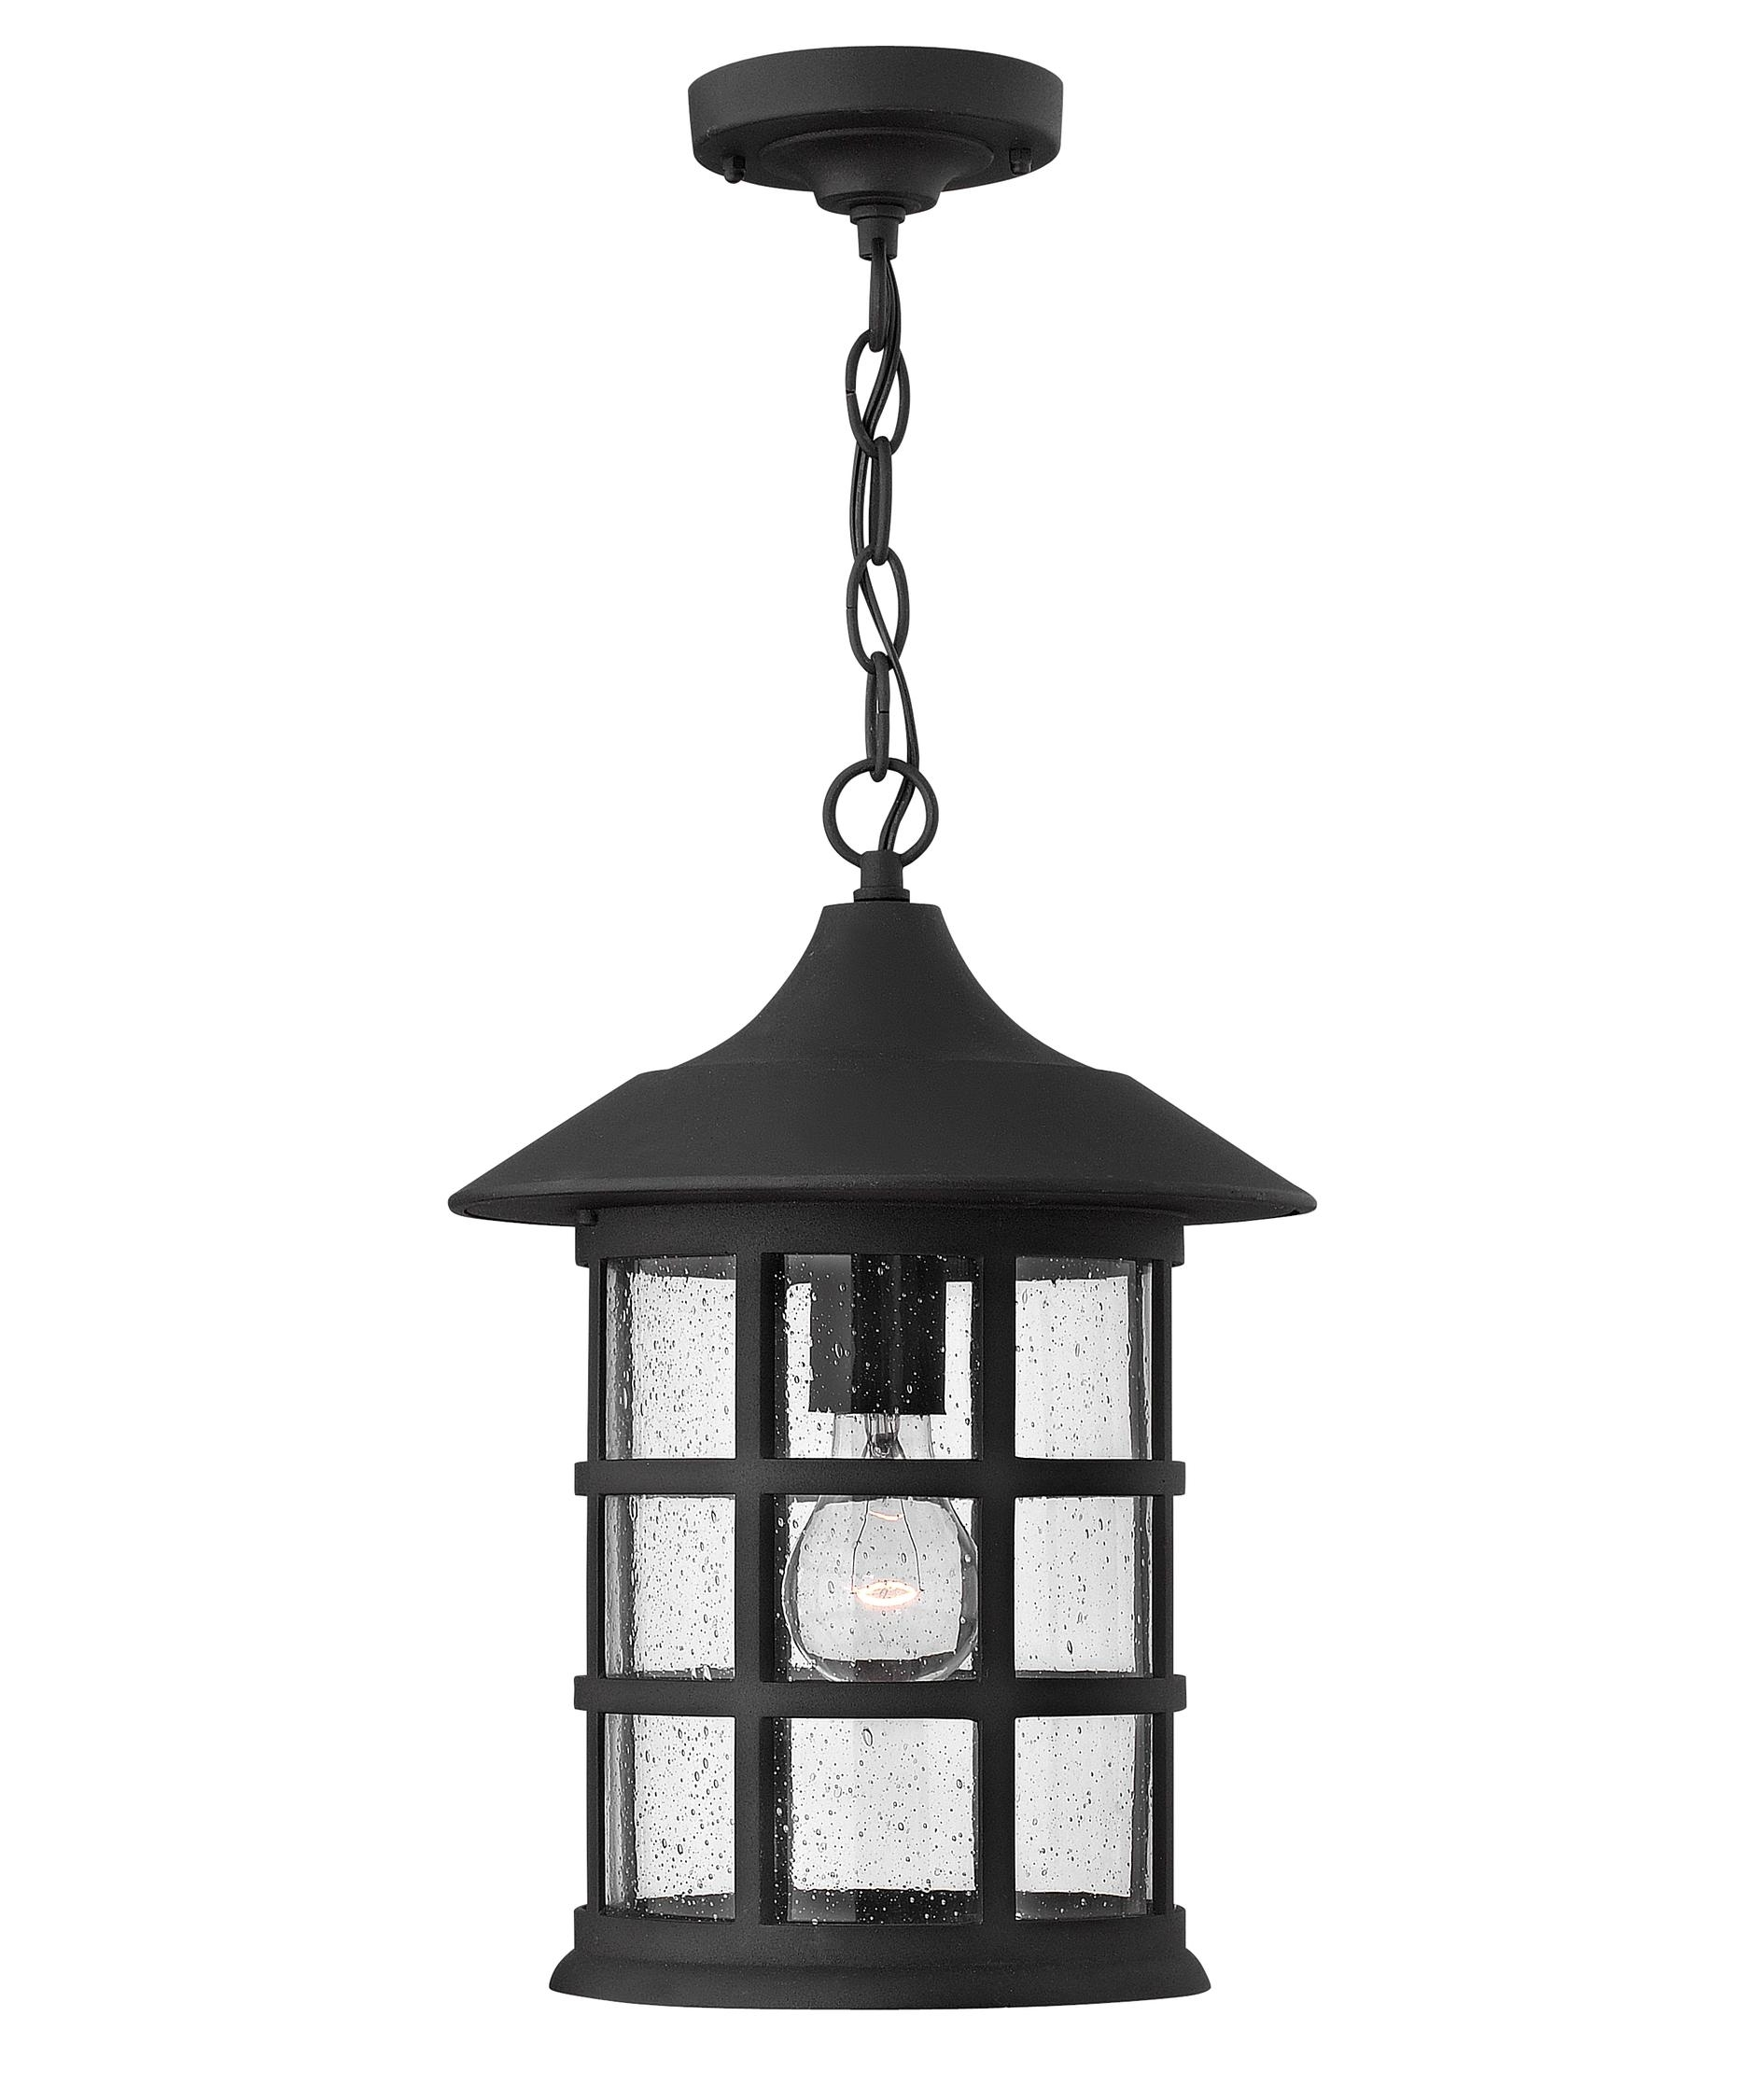 Hinkley Lighting 1802 Freeport 10 Inch Wide 1 Light Outdoor Hanging Intended For Outdoor Hanging Light Fixtures In Black (View 5 of 15)